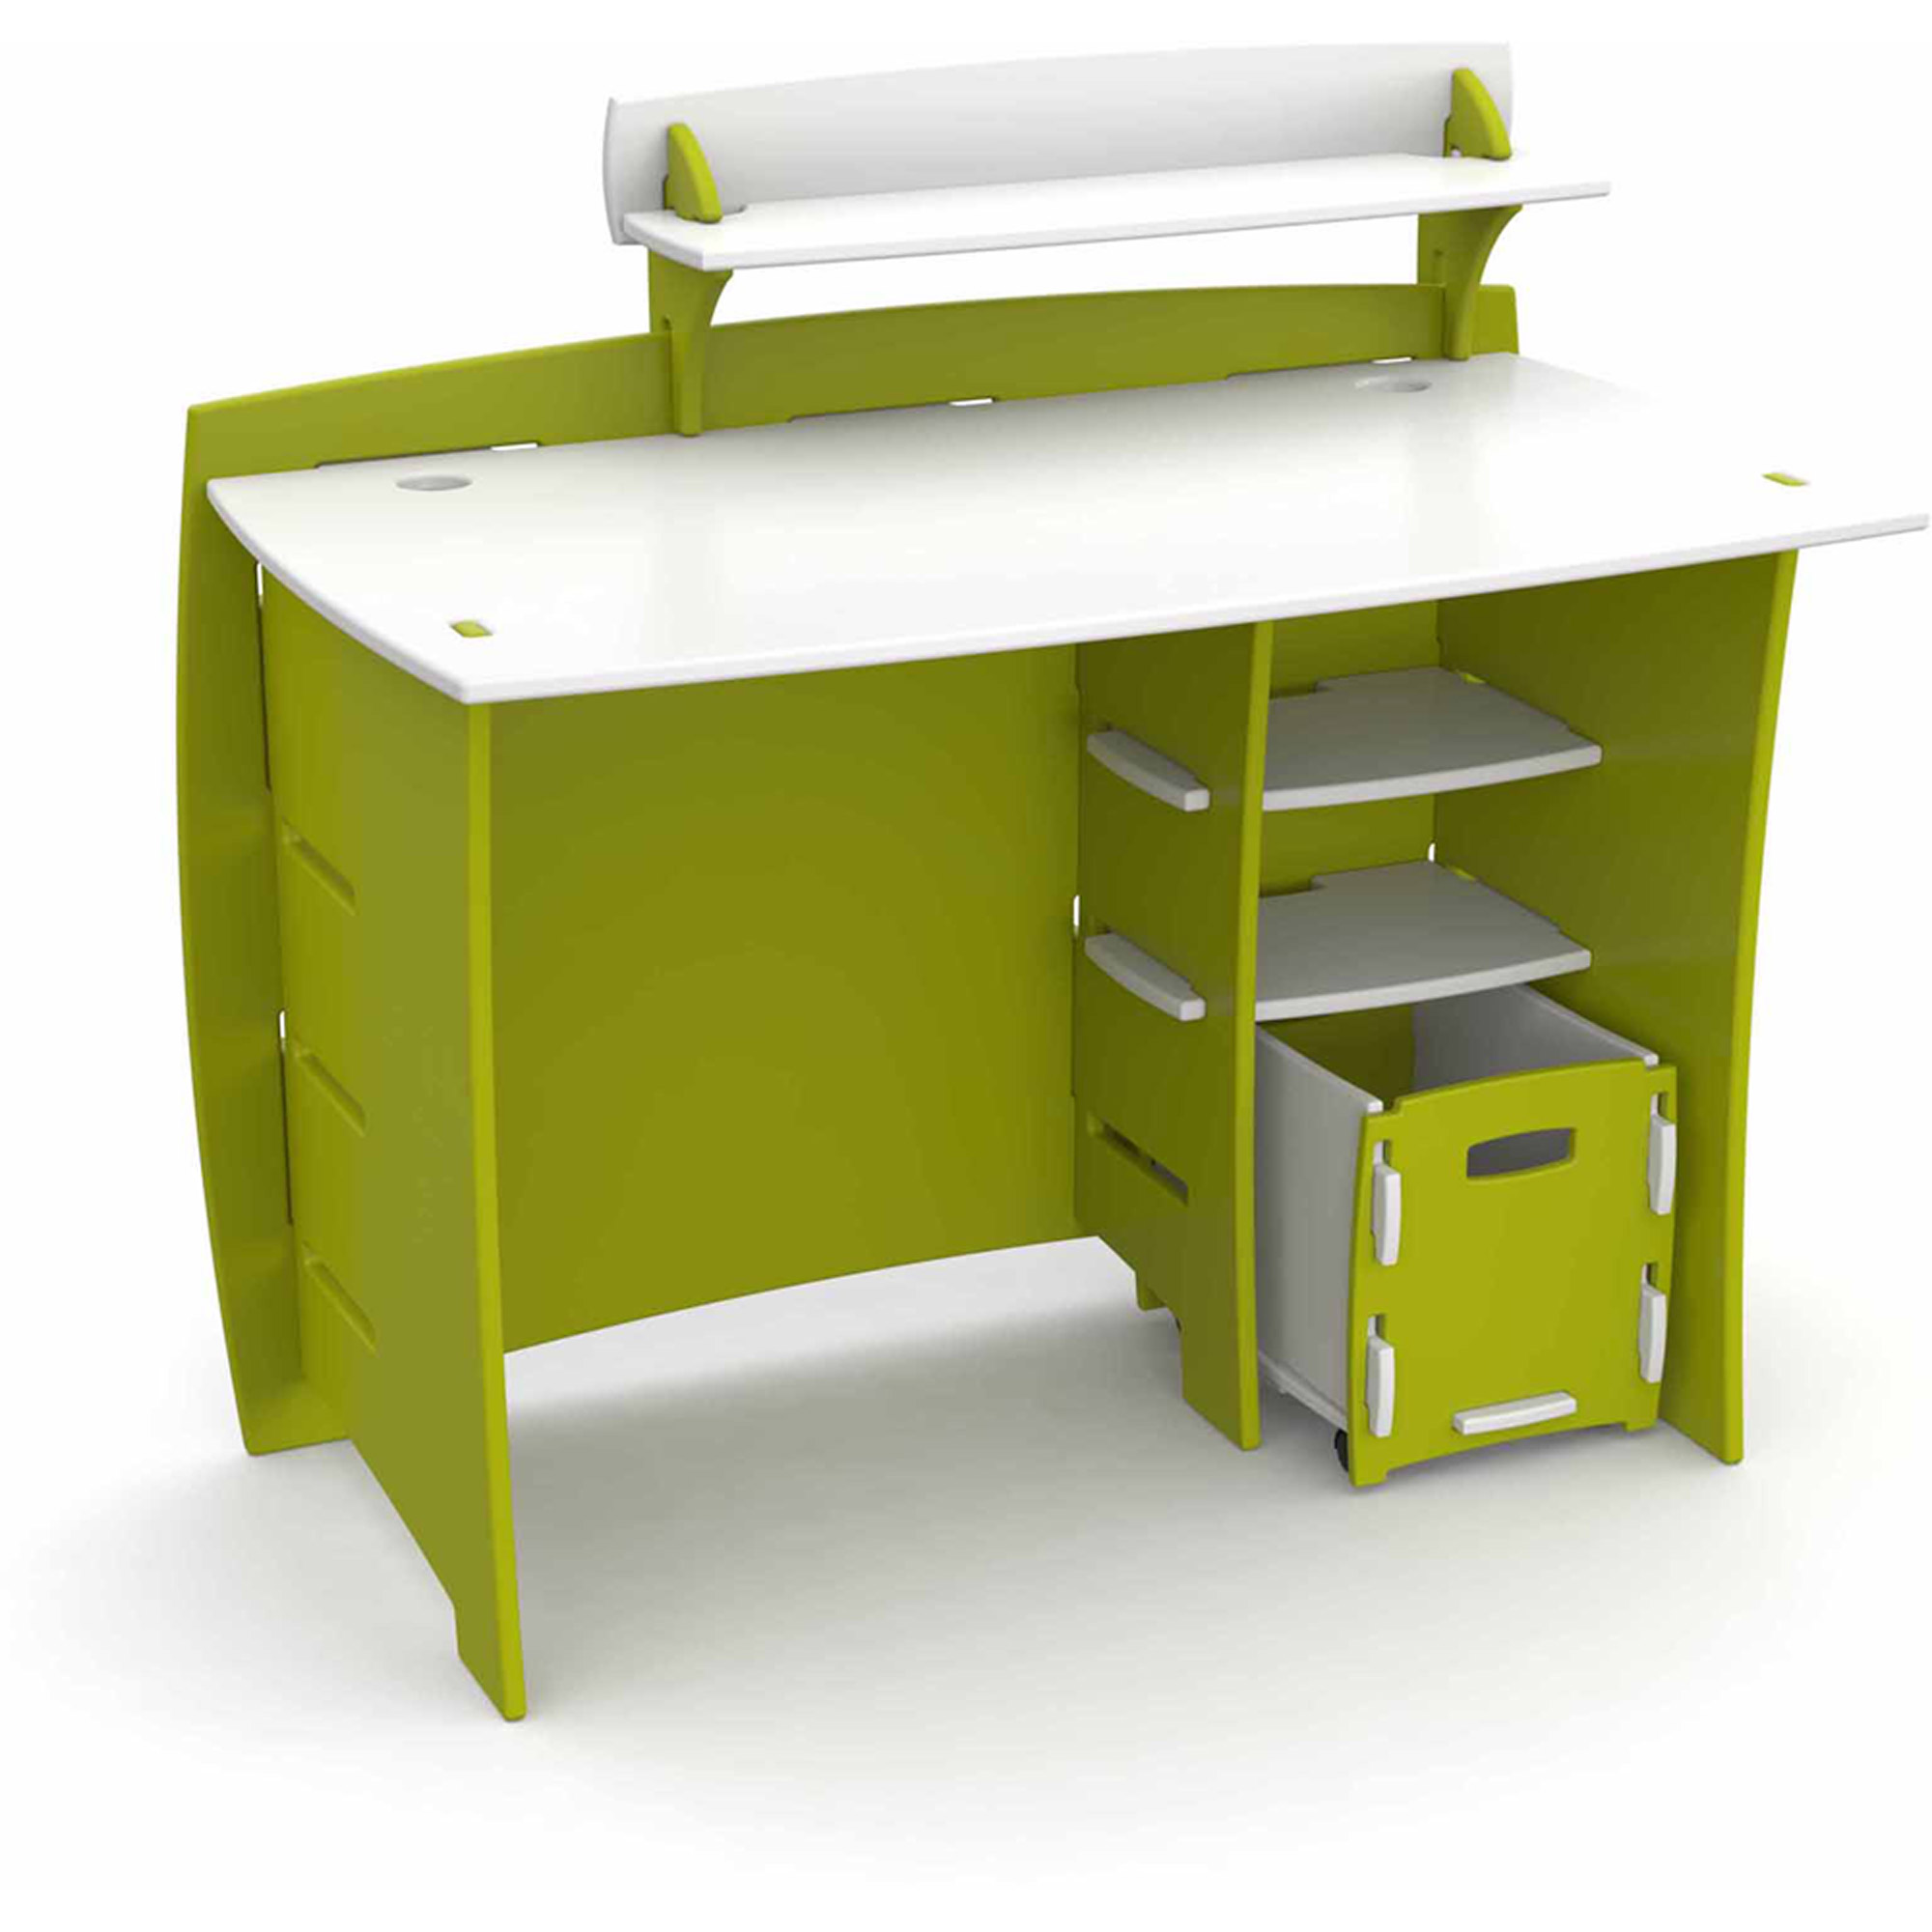 kid desk furniture. legare kids furniture frog series collection complete desk system set lime green and white walmartcom kid